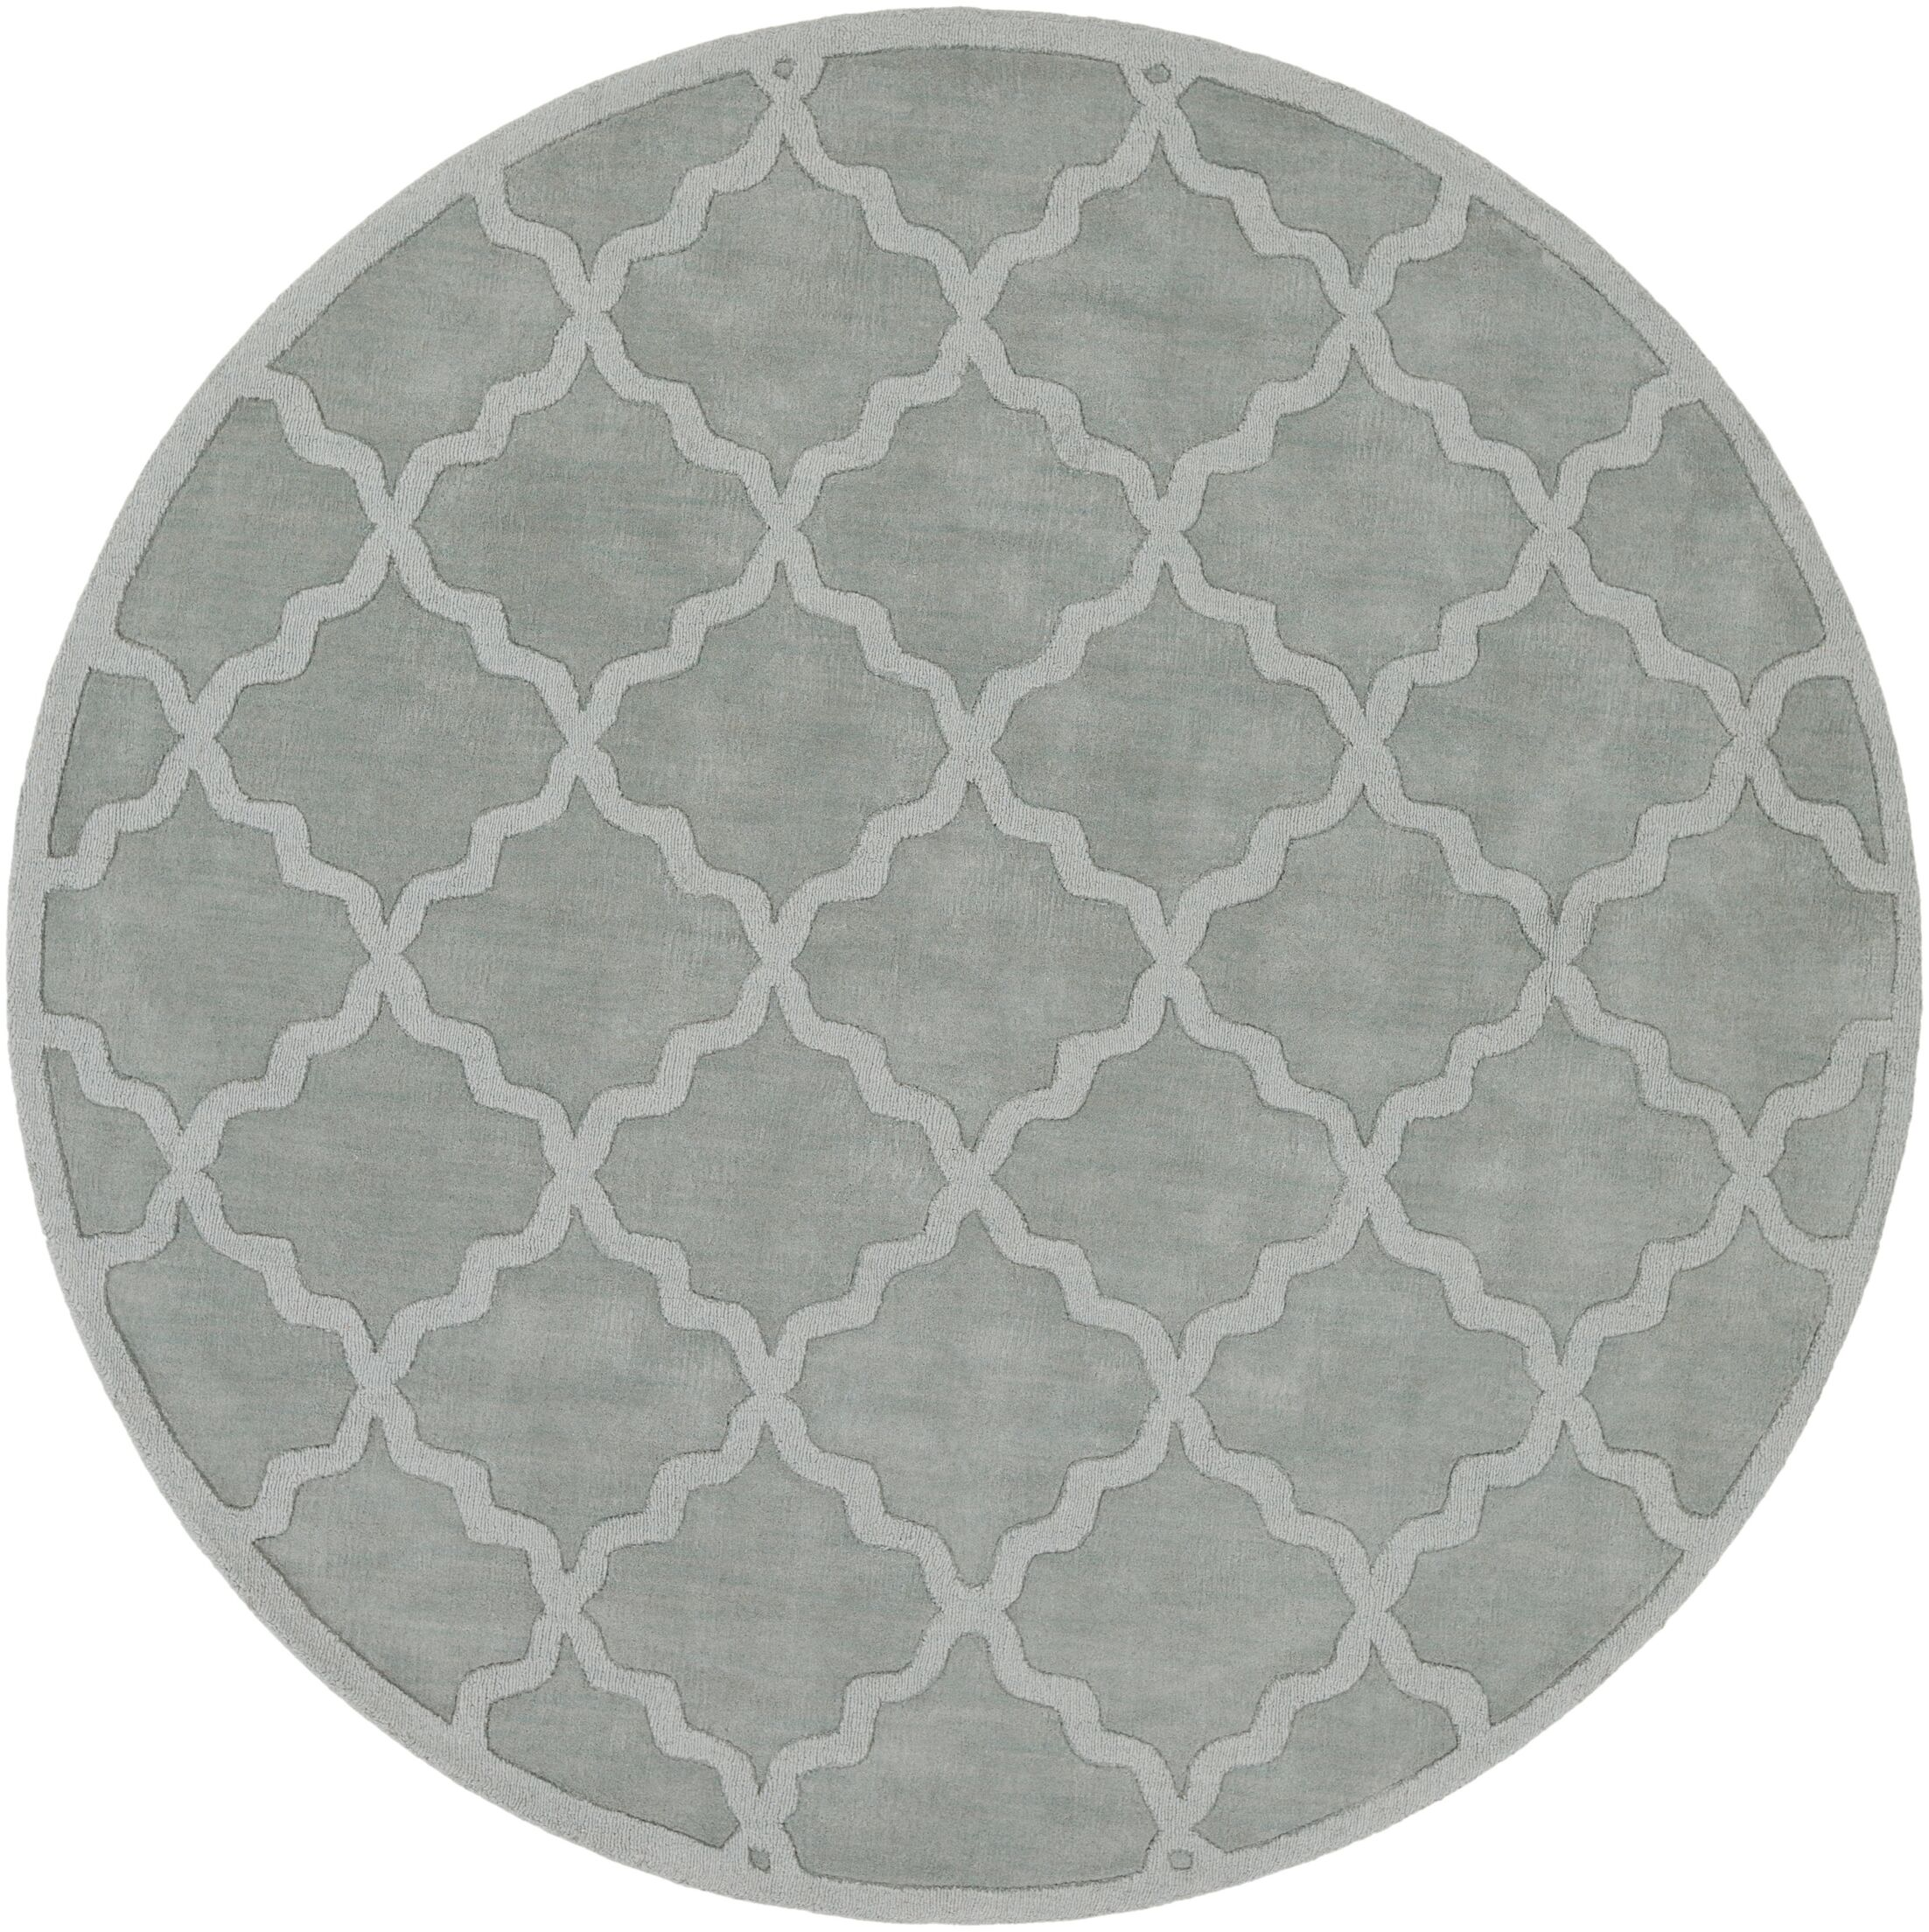 Blankenship Hand Woven Wool Light Blue Area Rug Rug Size: Round 7'9